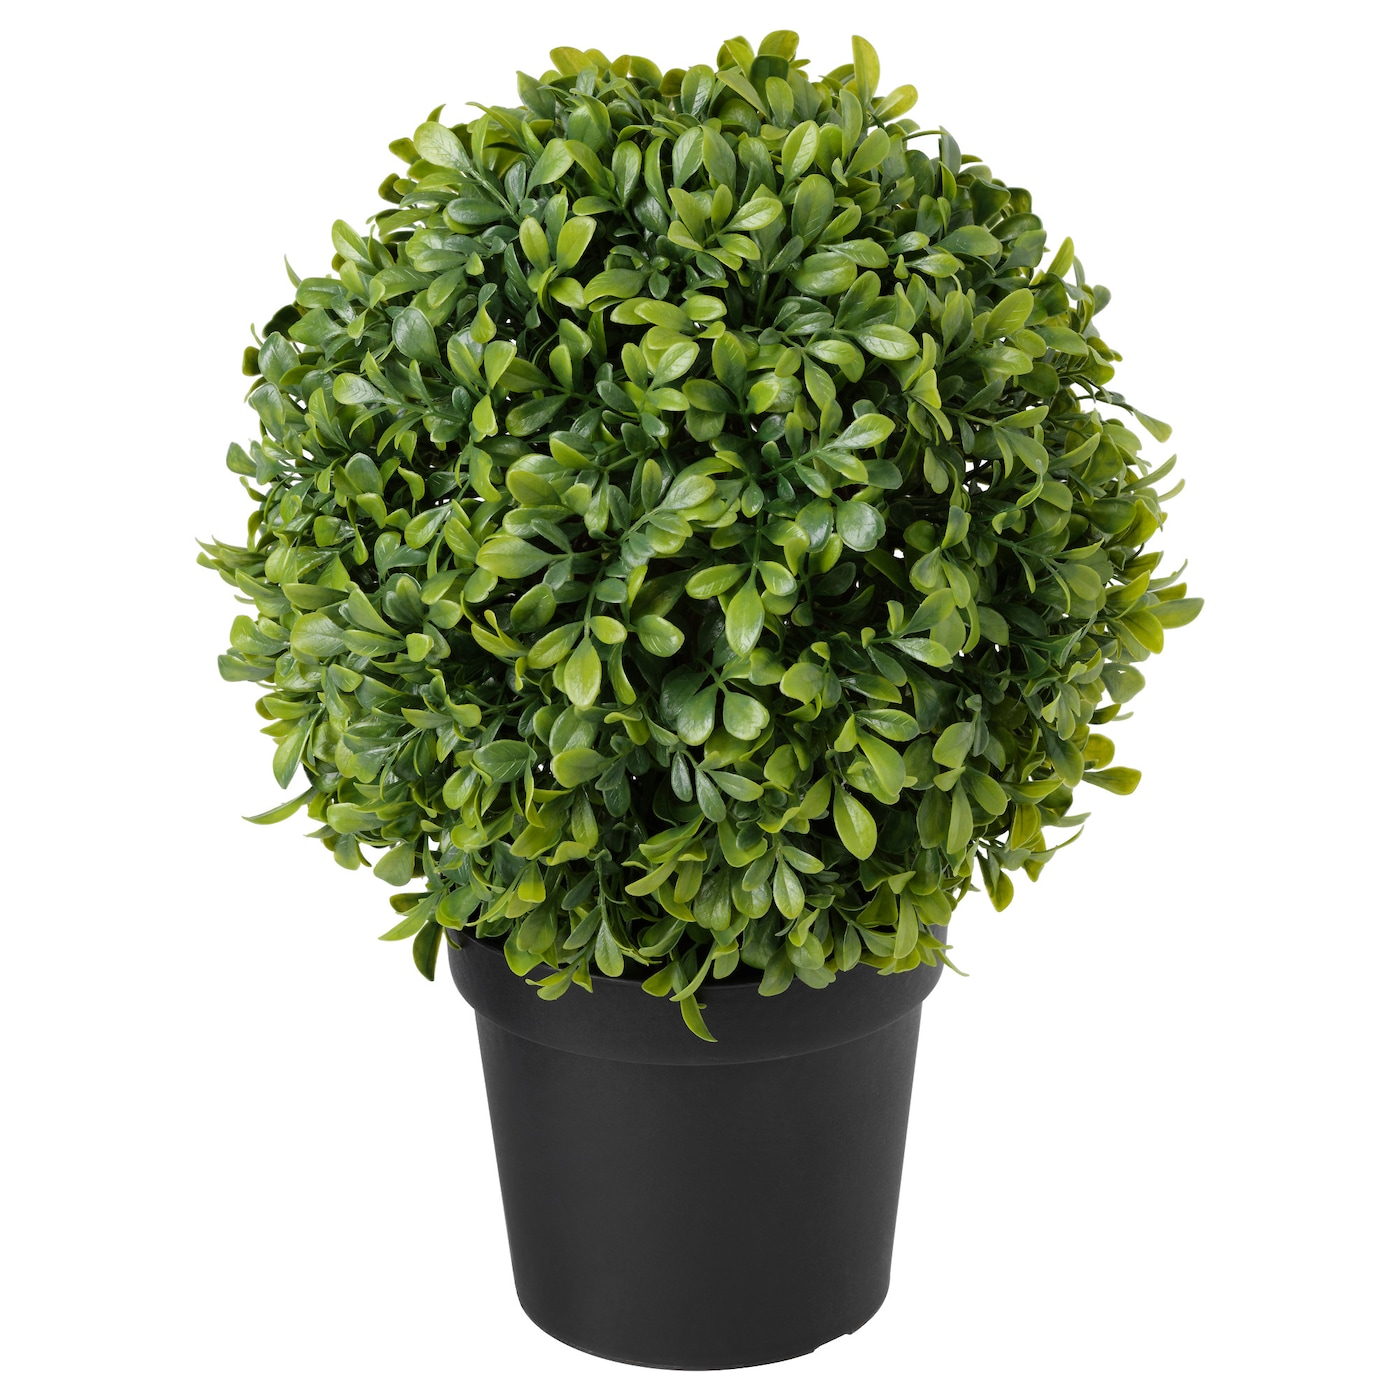 Fejka plante artificielle en pot int rieur ext rieur buis for Plante artificielle exterieur ikea